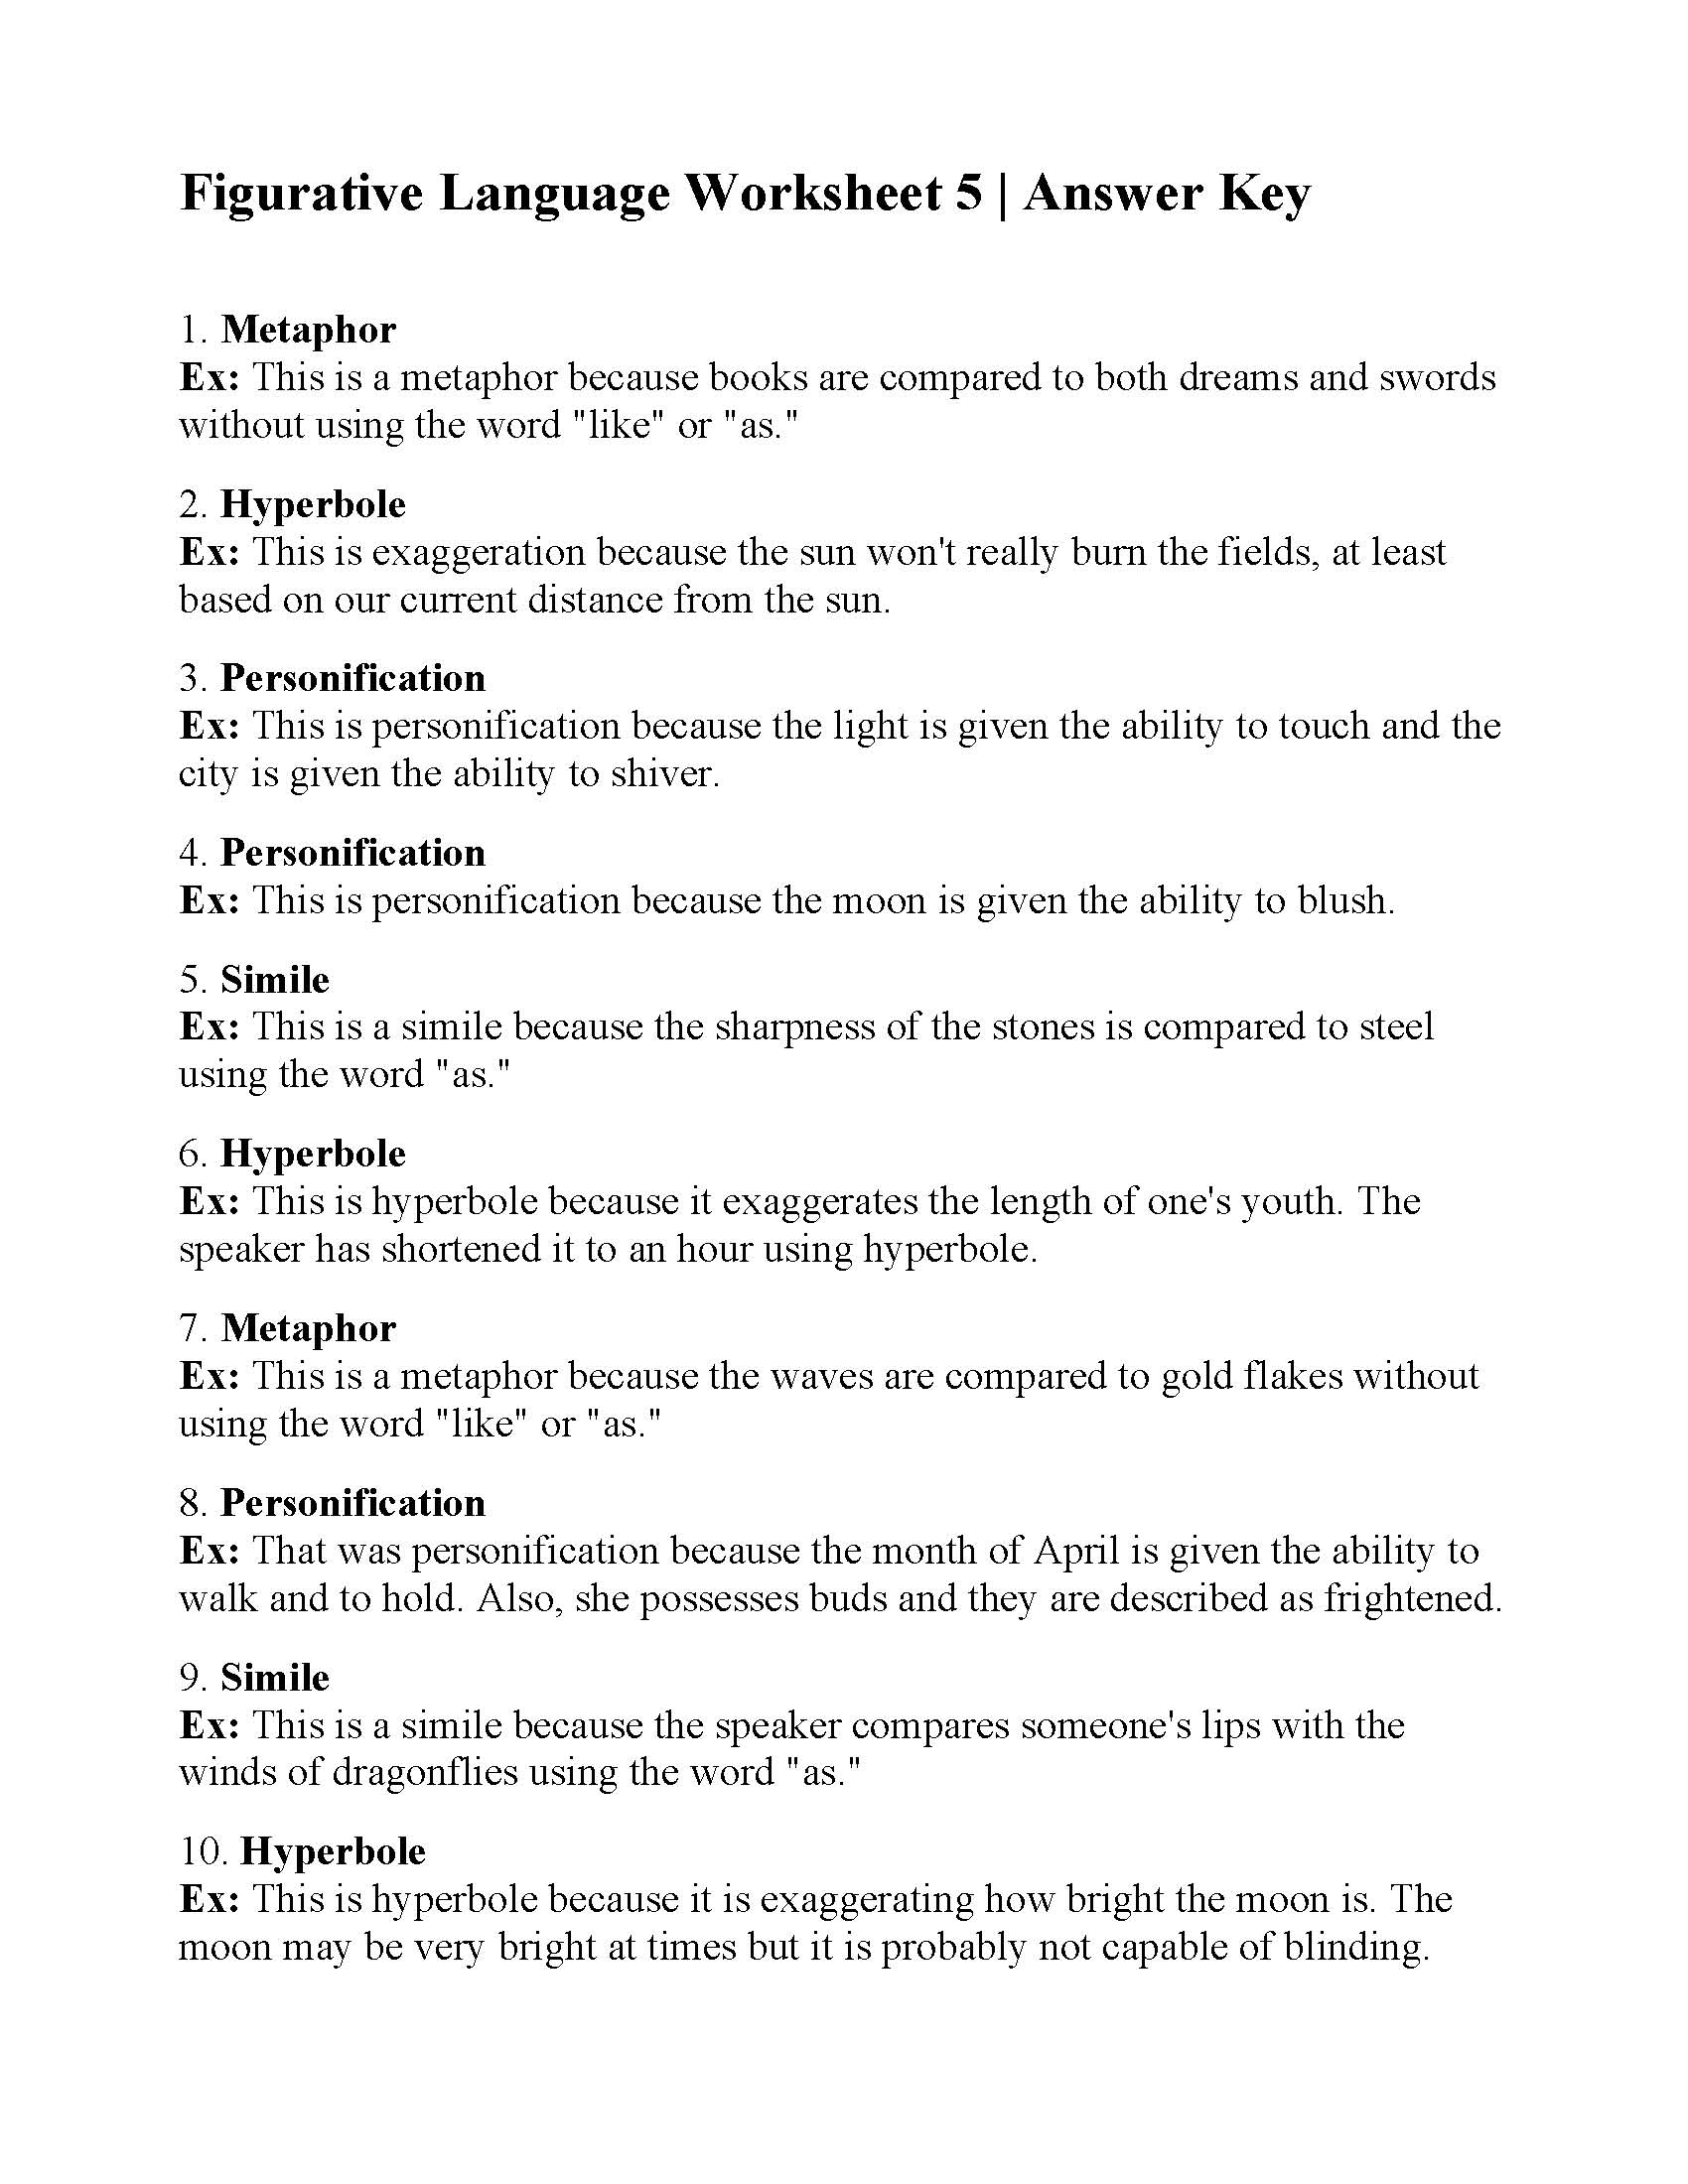 Worksheets Figurative Language Review Worksheet figurative language worksheet 5 answers this is the answer key for 5